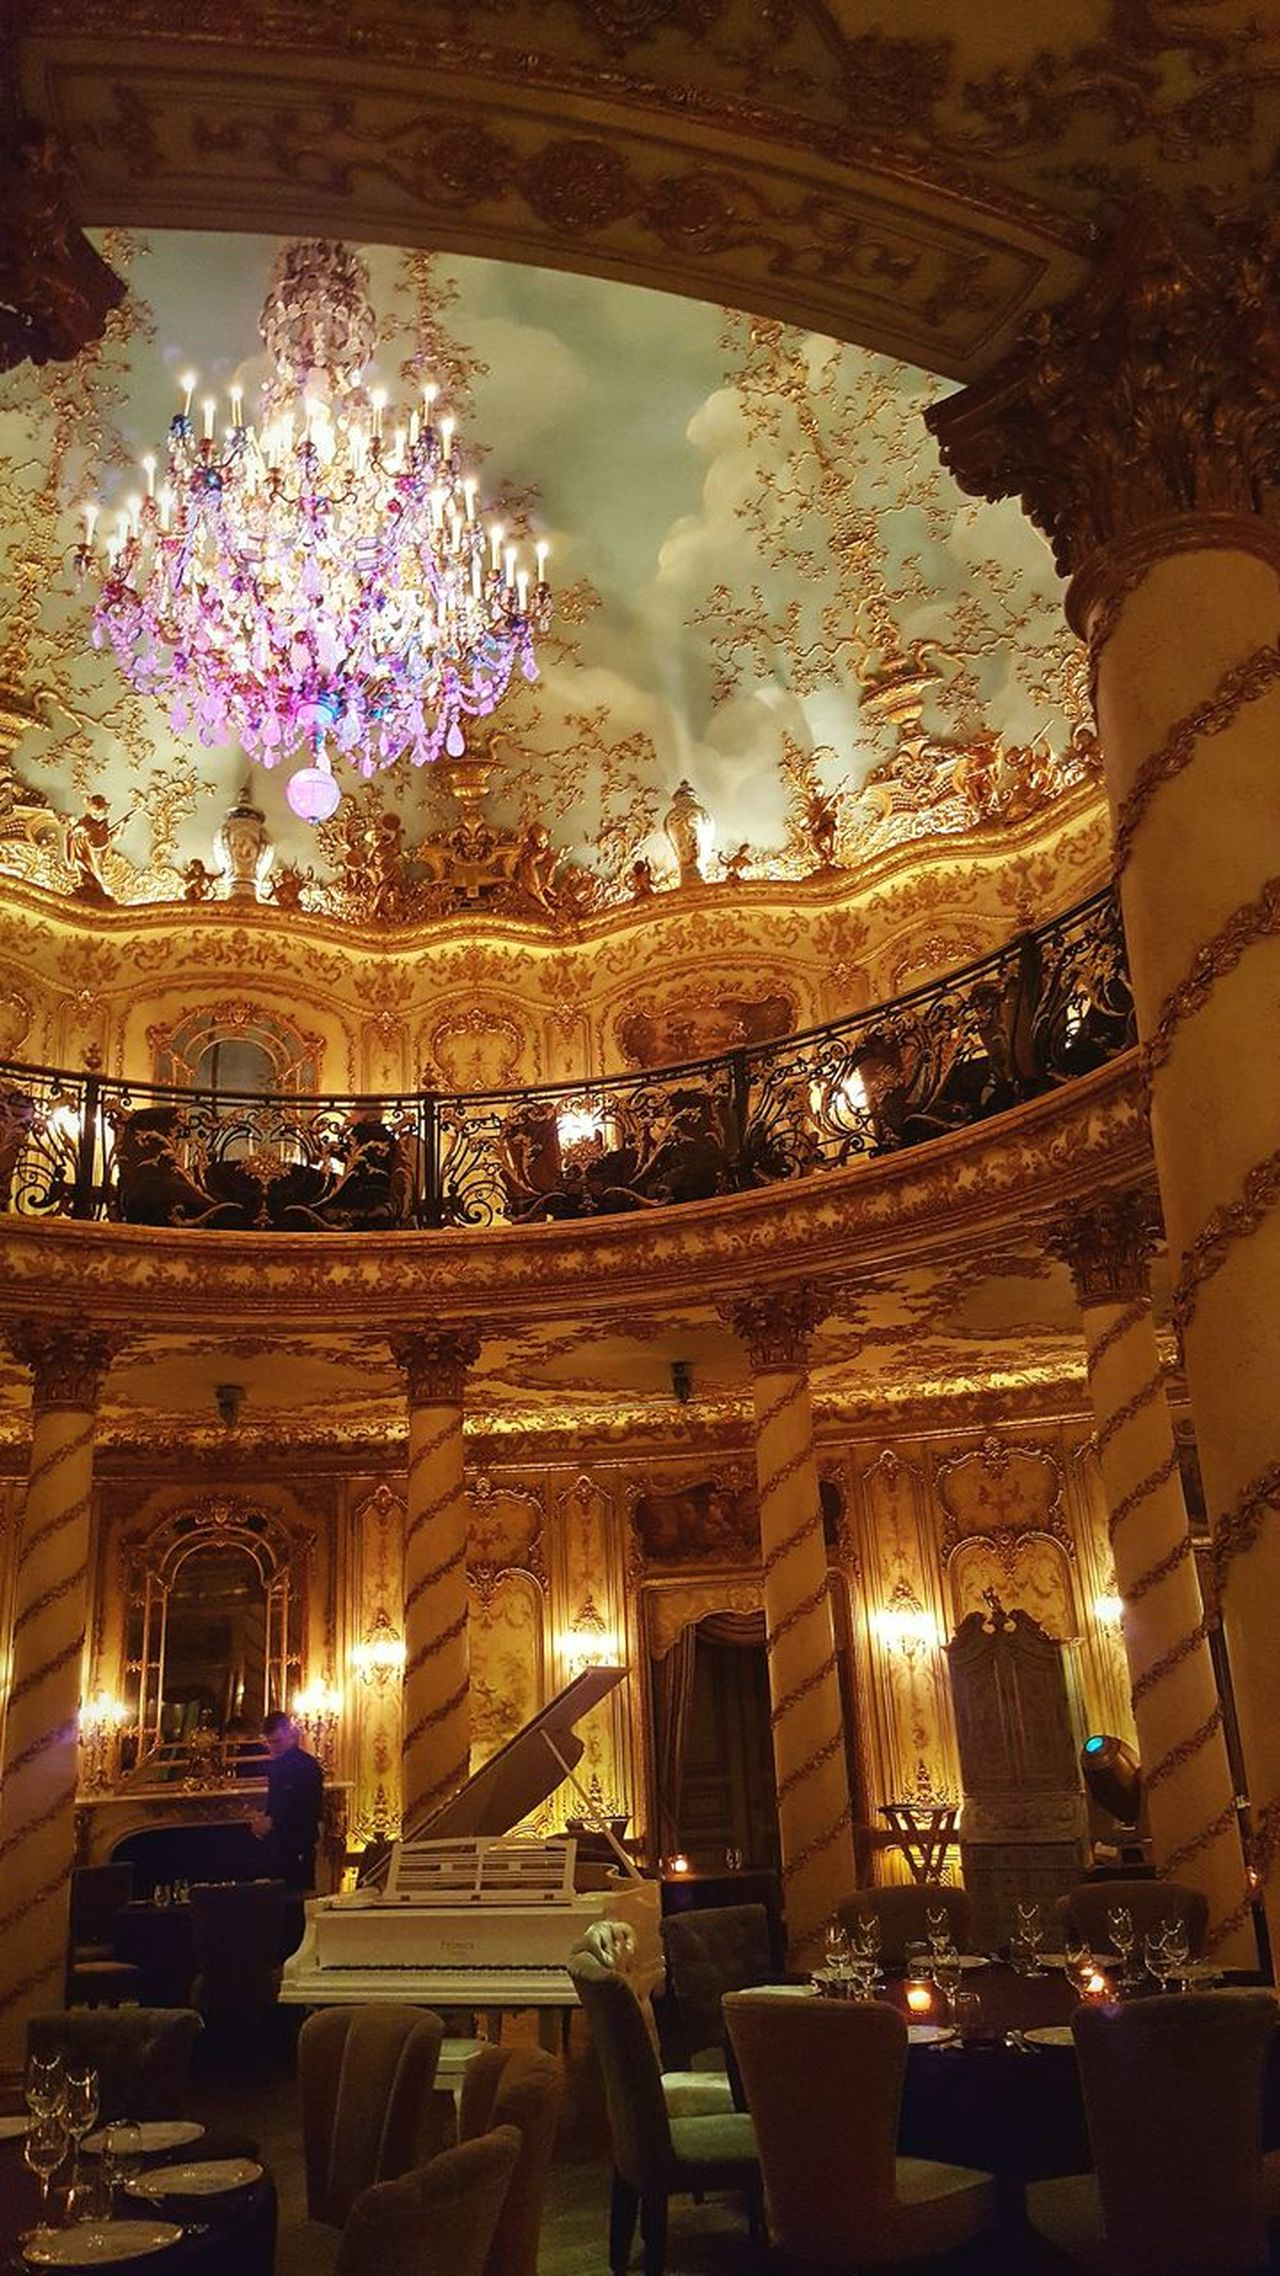 Illuminated Luxury Lifestyle Beautiful Ceilings Gold Colored Night Posh Restaurant Golden Rococo Rococò Style Rococostyle Baroque Style Turandot Restaurant Moscow Baroque Restaurant Moscow Russia Turandot Architecture Chandelier Posh Luxury Elégance Celing Food And Drink Celebration